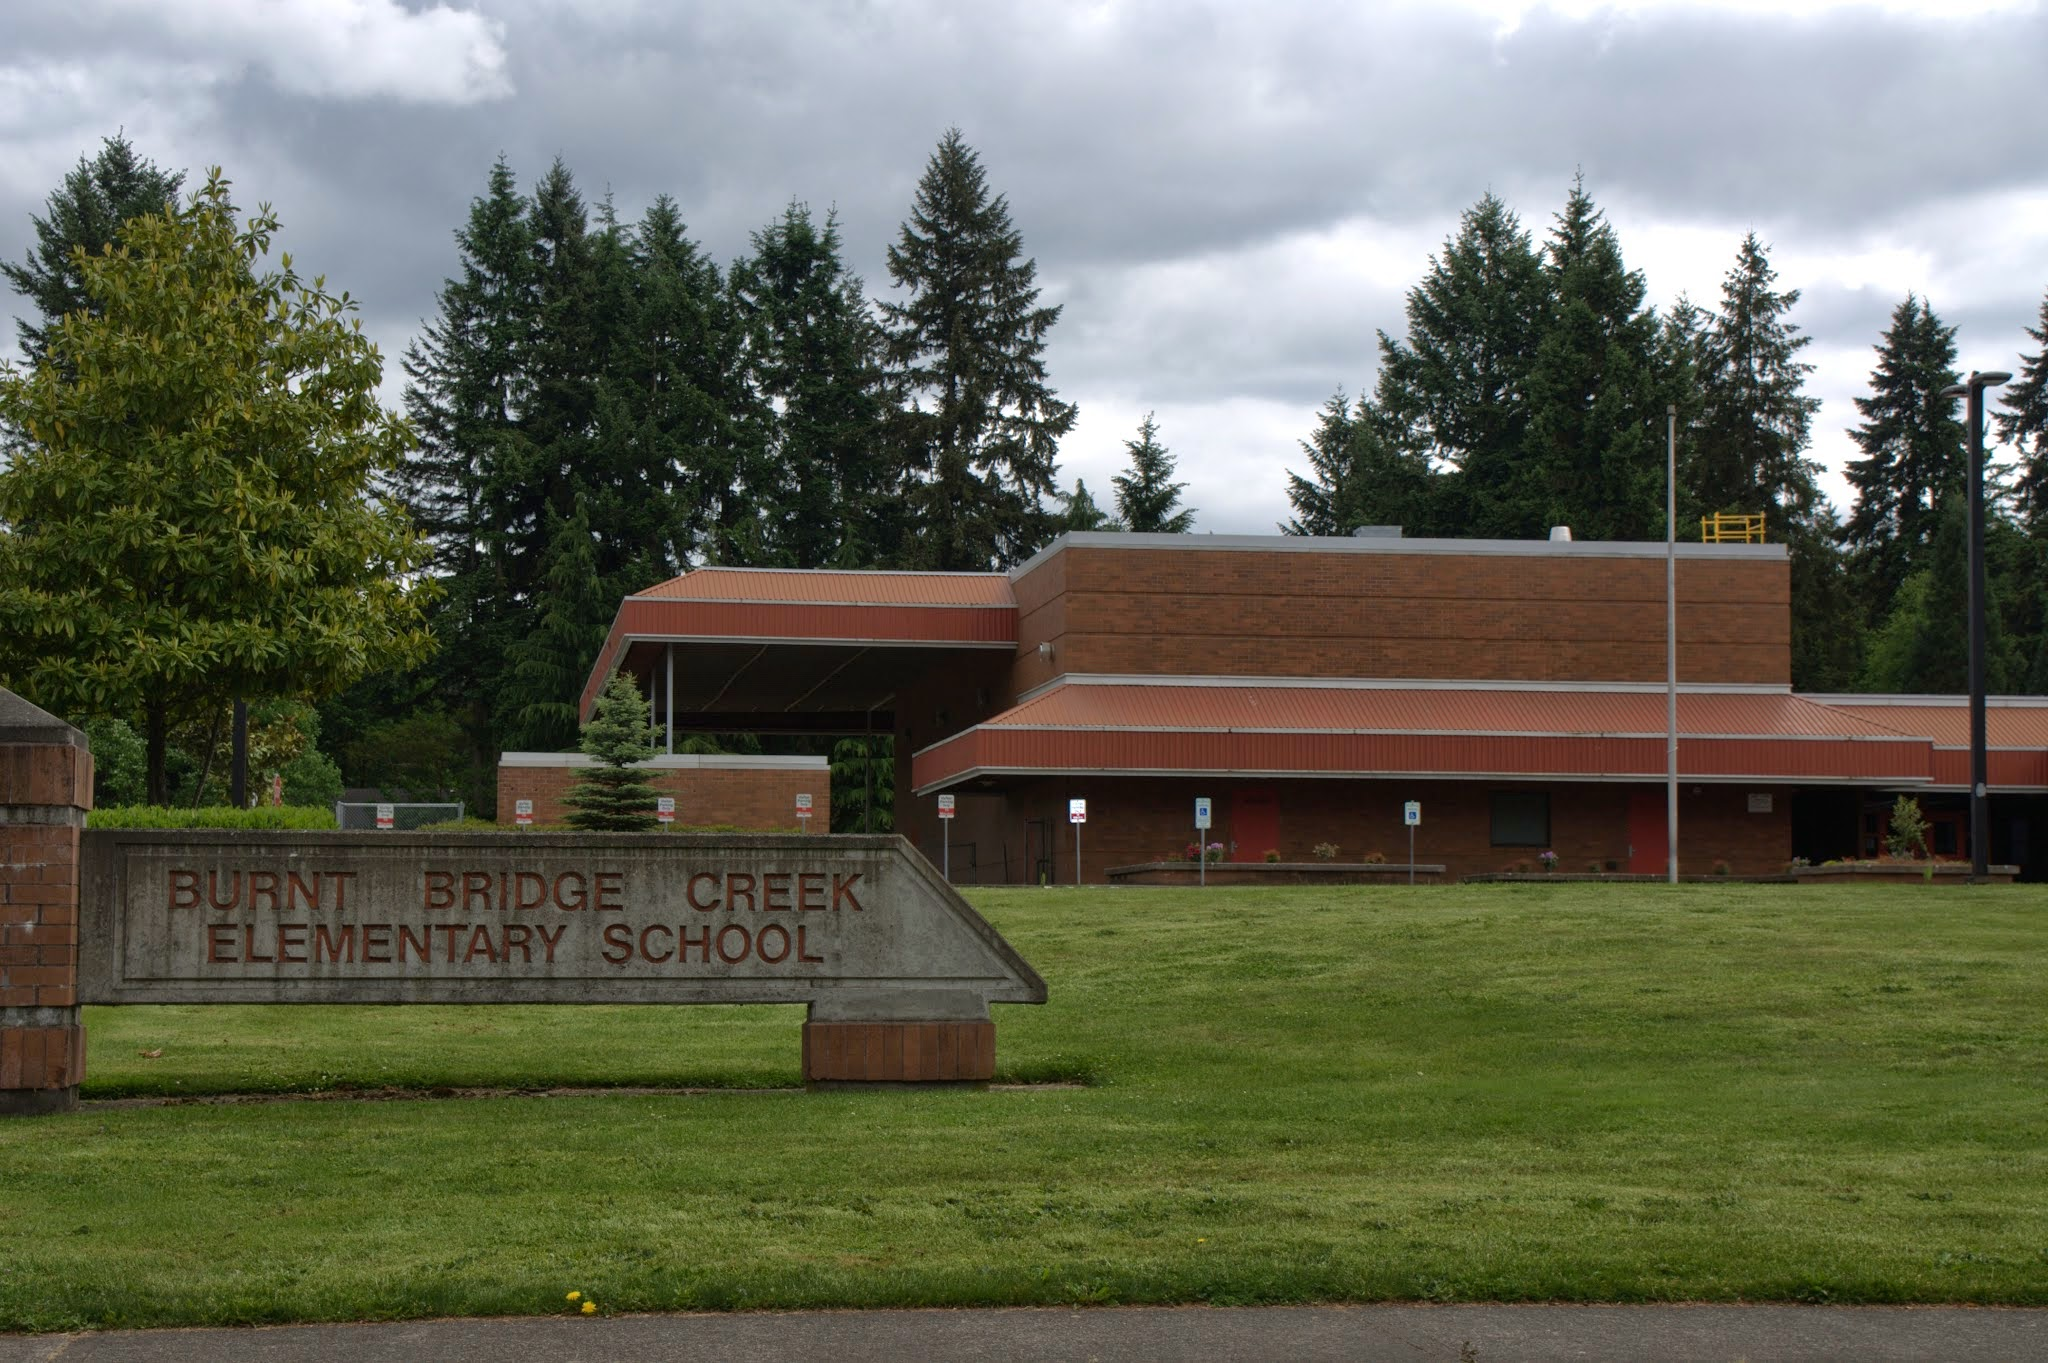 Burnt Bridge Elementary School (Vancouver, Washington) Homes for Sale